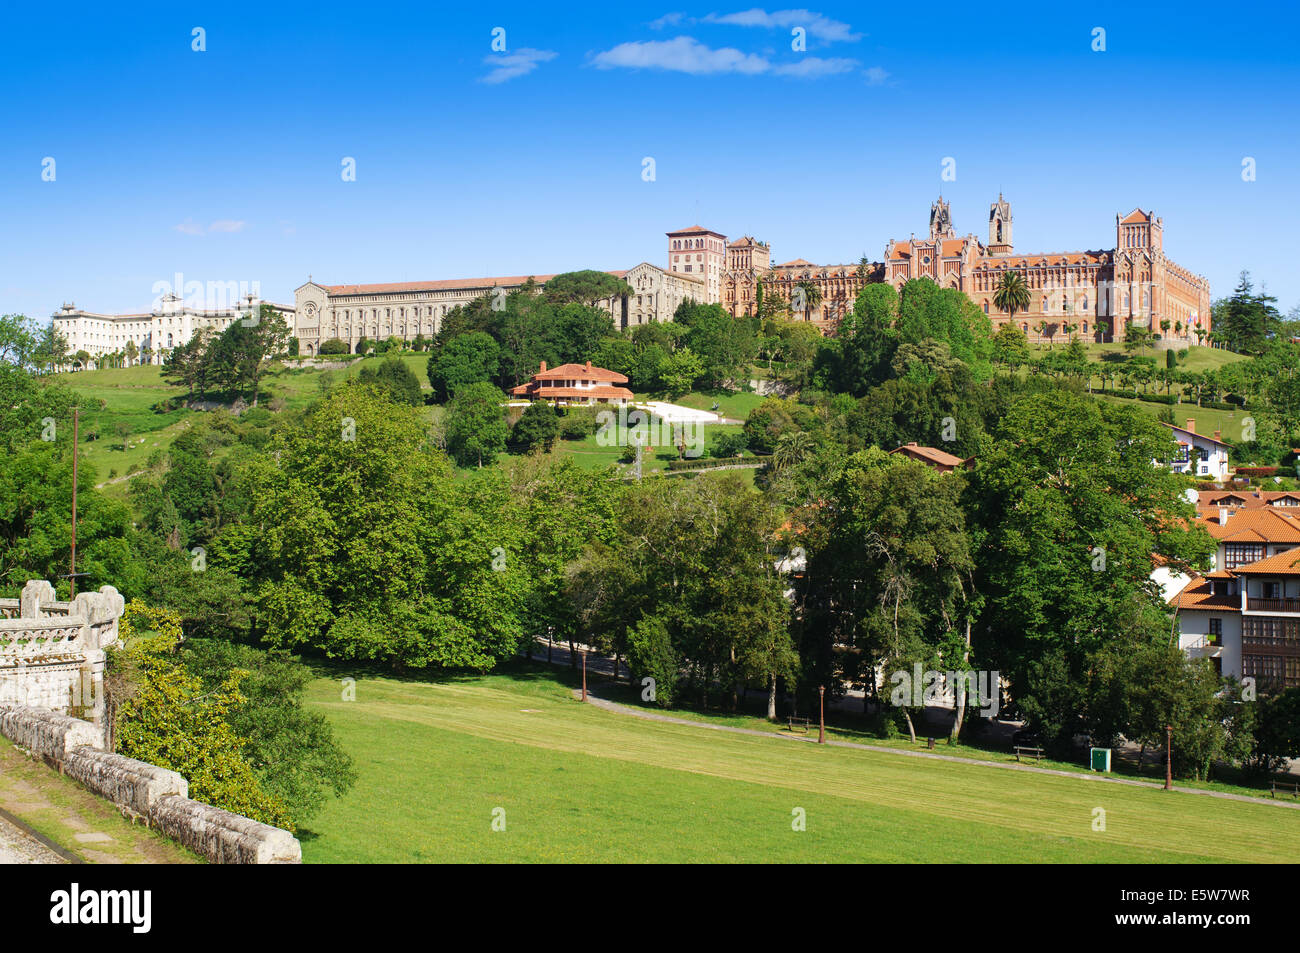 The buildings of the Universidad Pontificia  or Pontifical University, Comillas,  Cantabria, Northern Spain, Europe - Stock Image